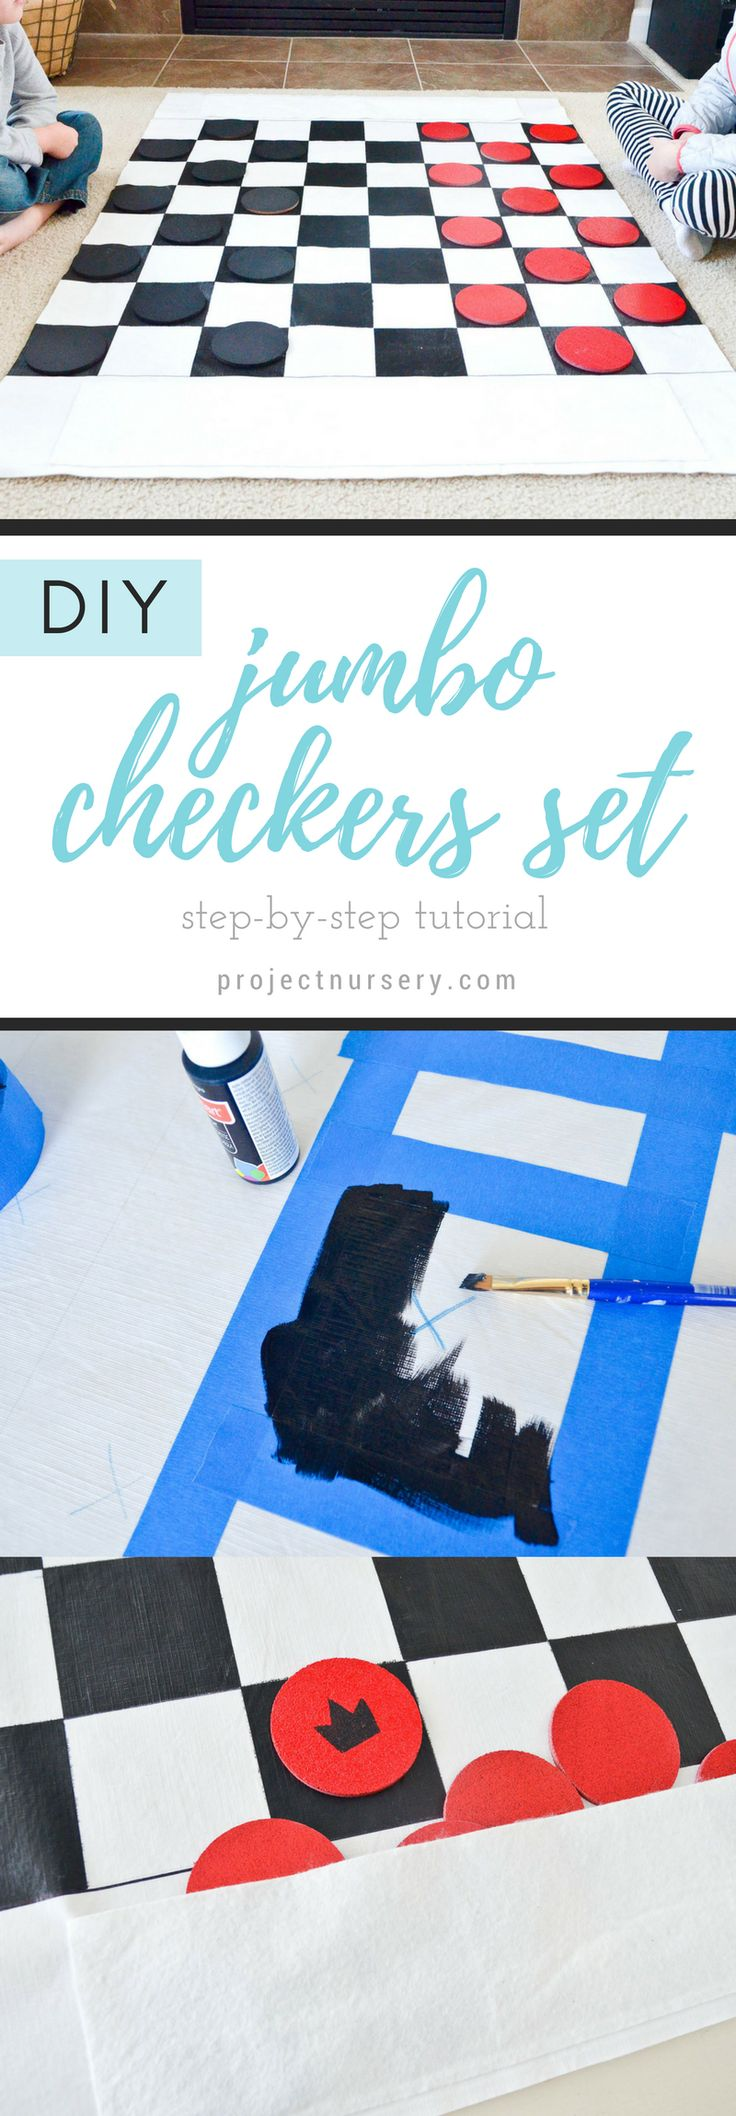 284 best DIY Projects to Try images on Pinterest | Project nursery ...